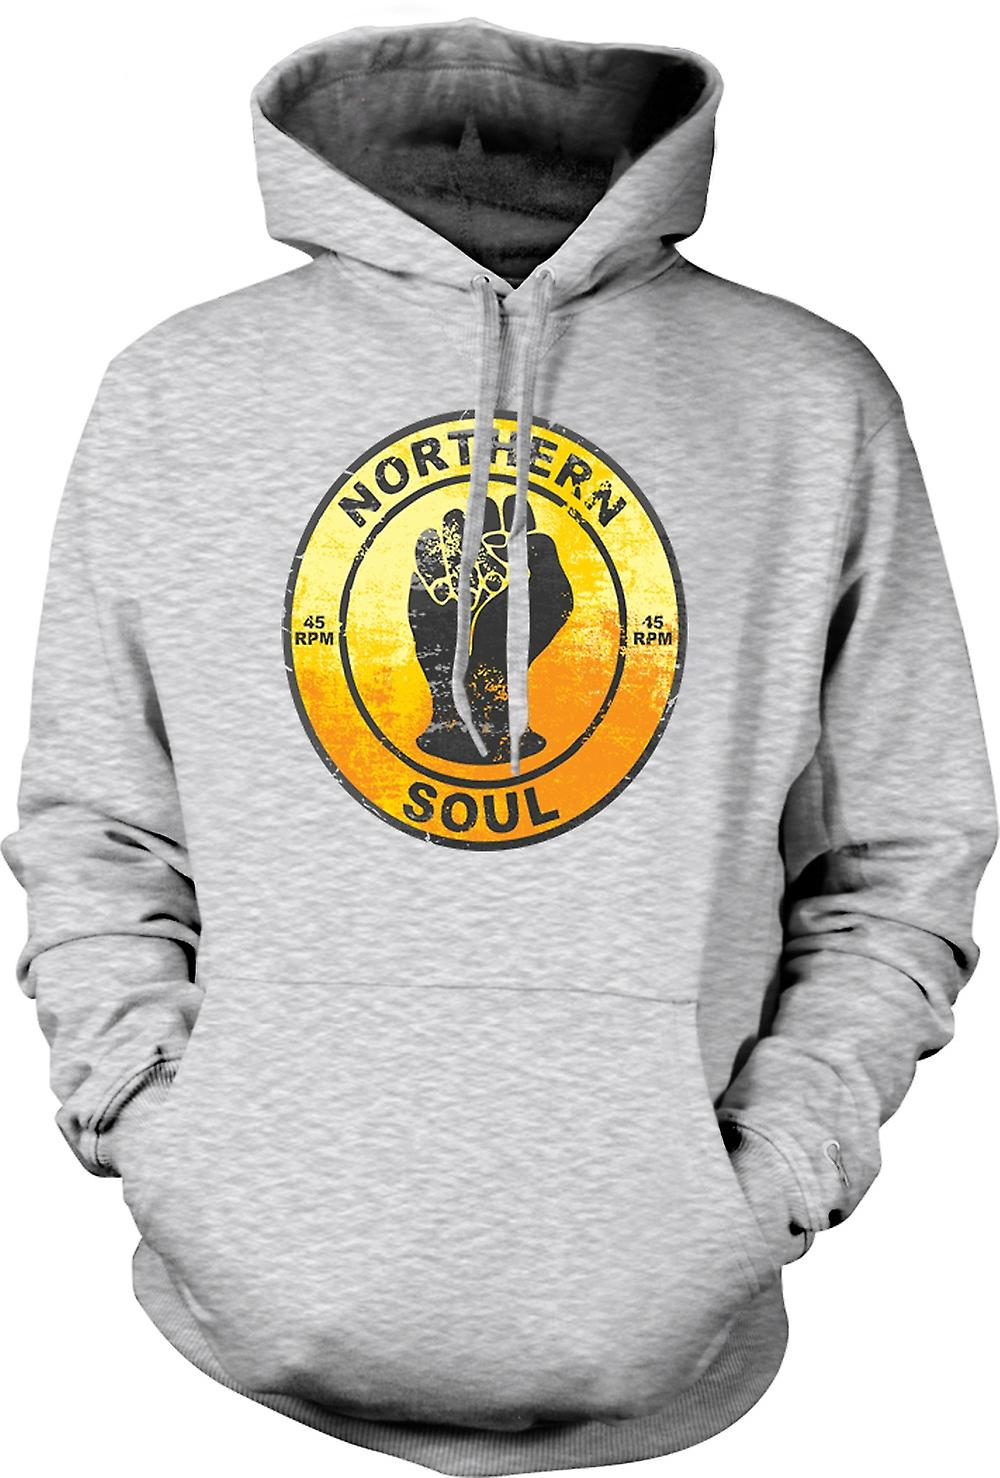 Mens Hoodie - Northern Soul - Vinyl Music